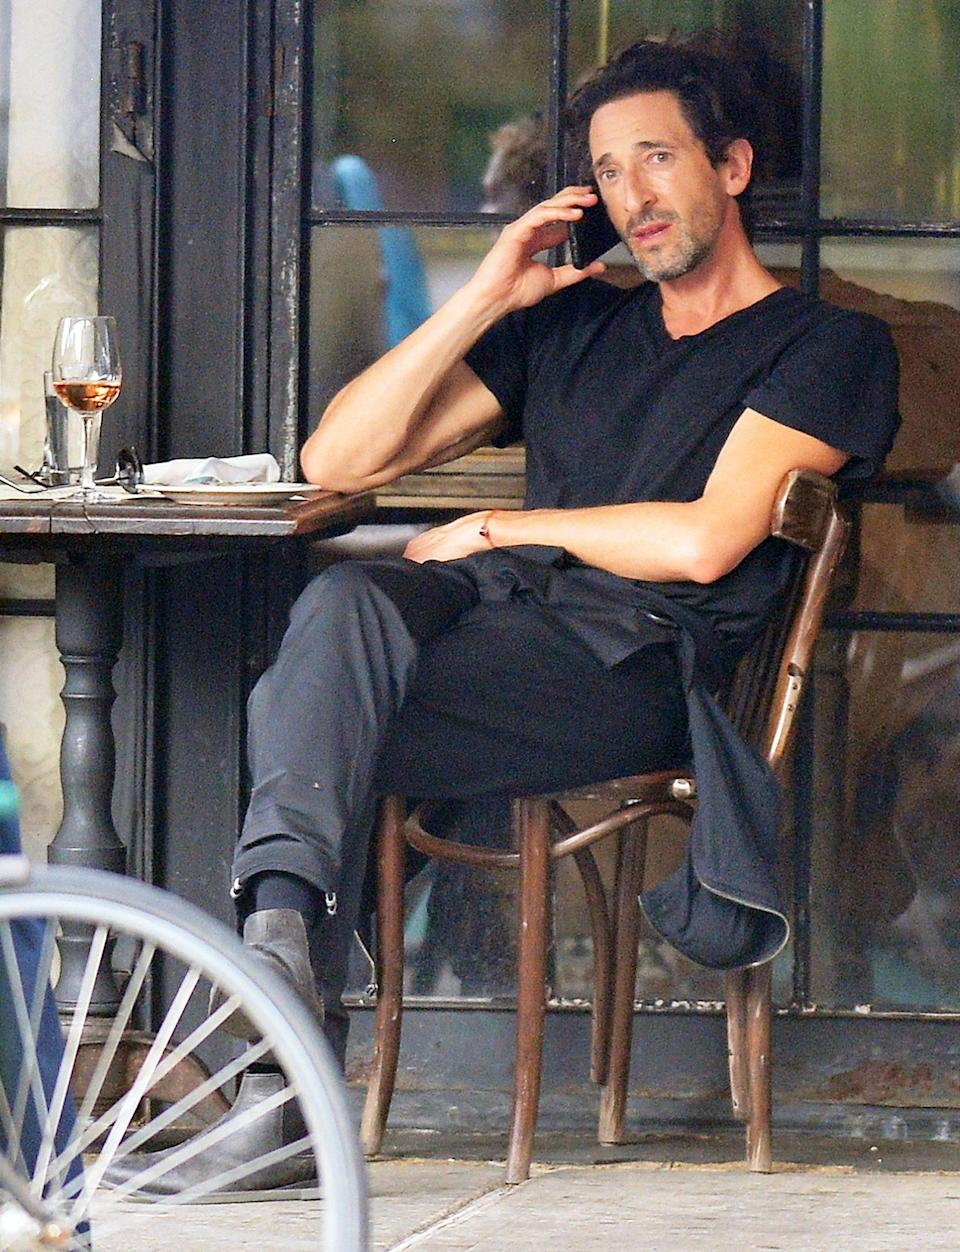 <p>An incognito Adrien Brody chats on his phone while enjoying a glass of wine outside at a New York City restaurant on Tuesday.</p>